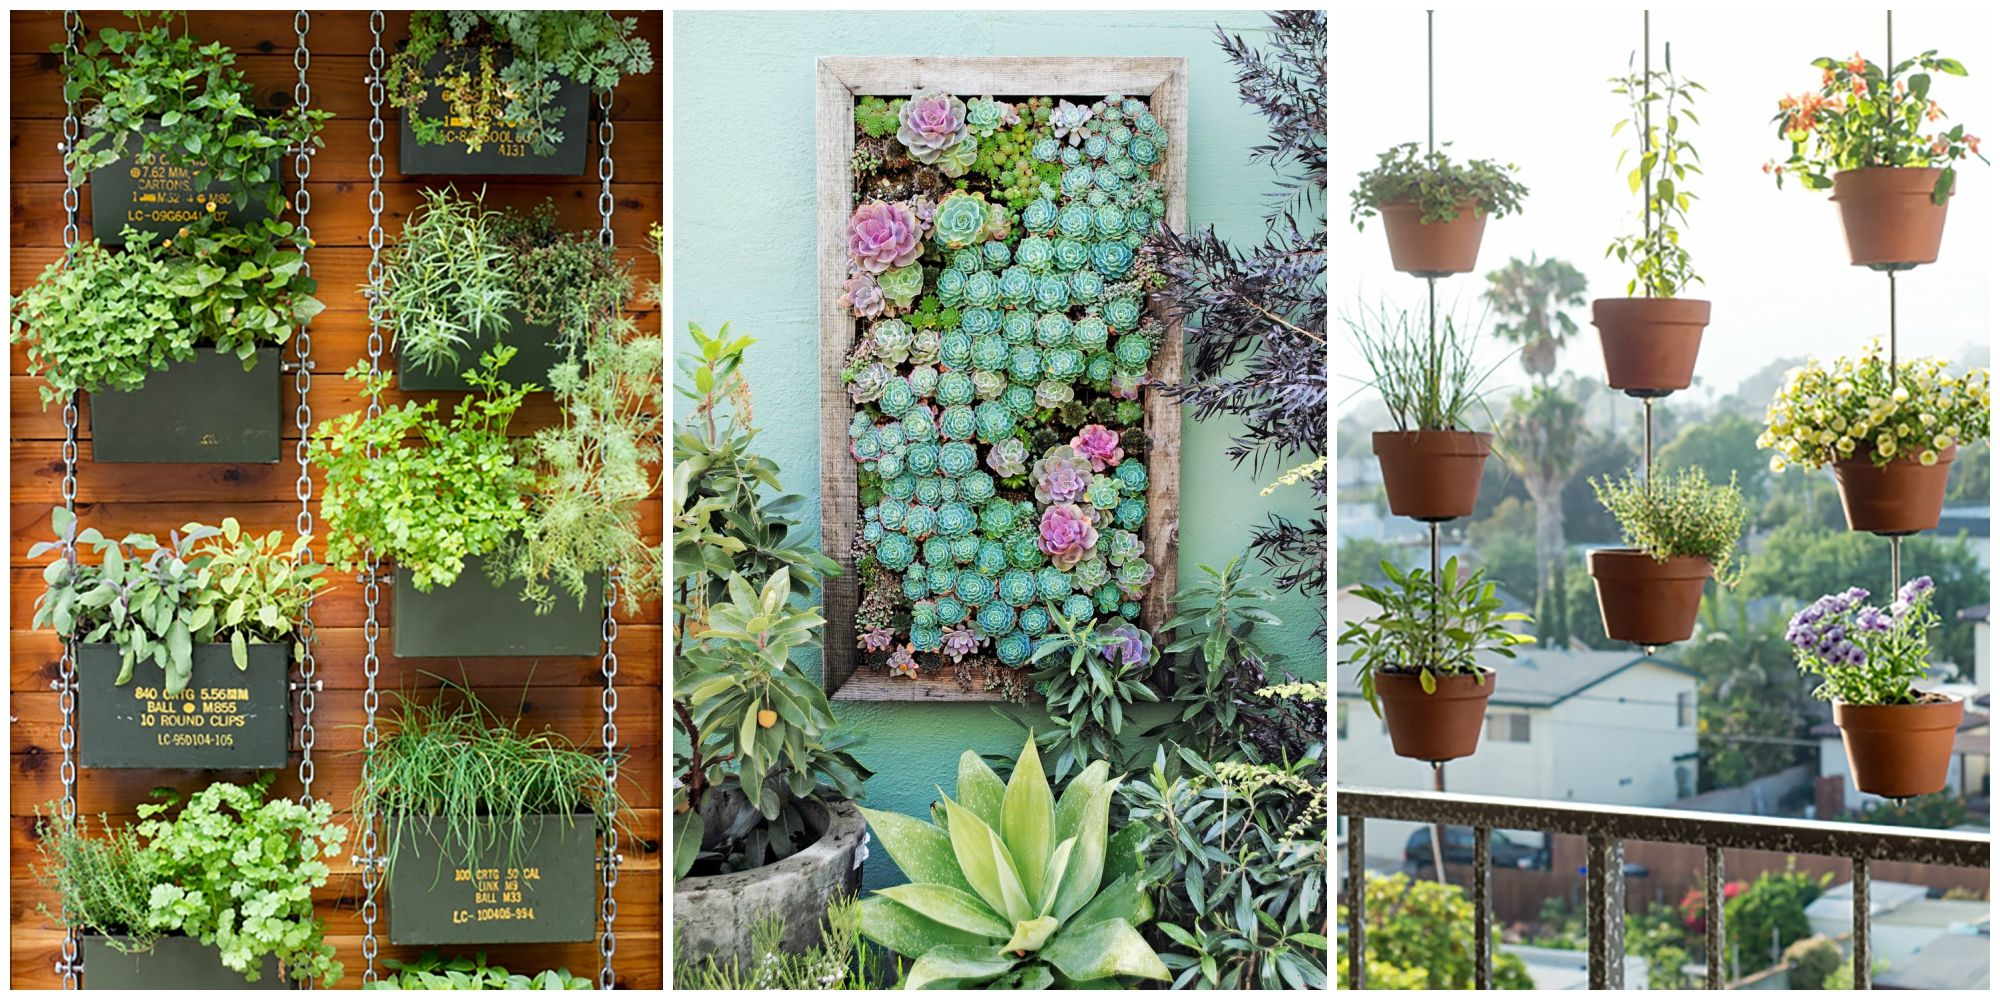 How To Plant A Vertical Garden